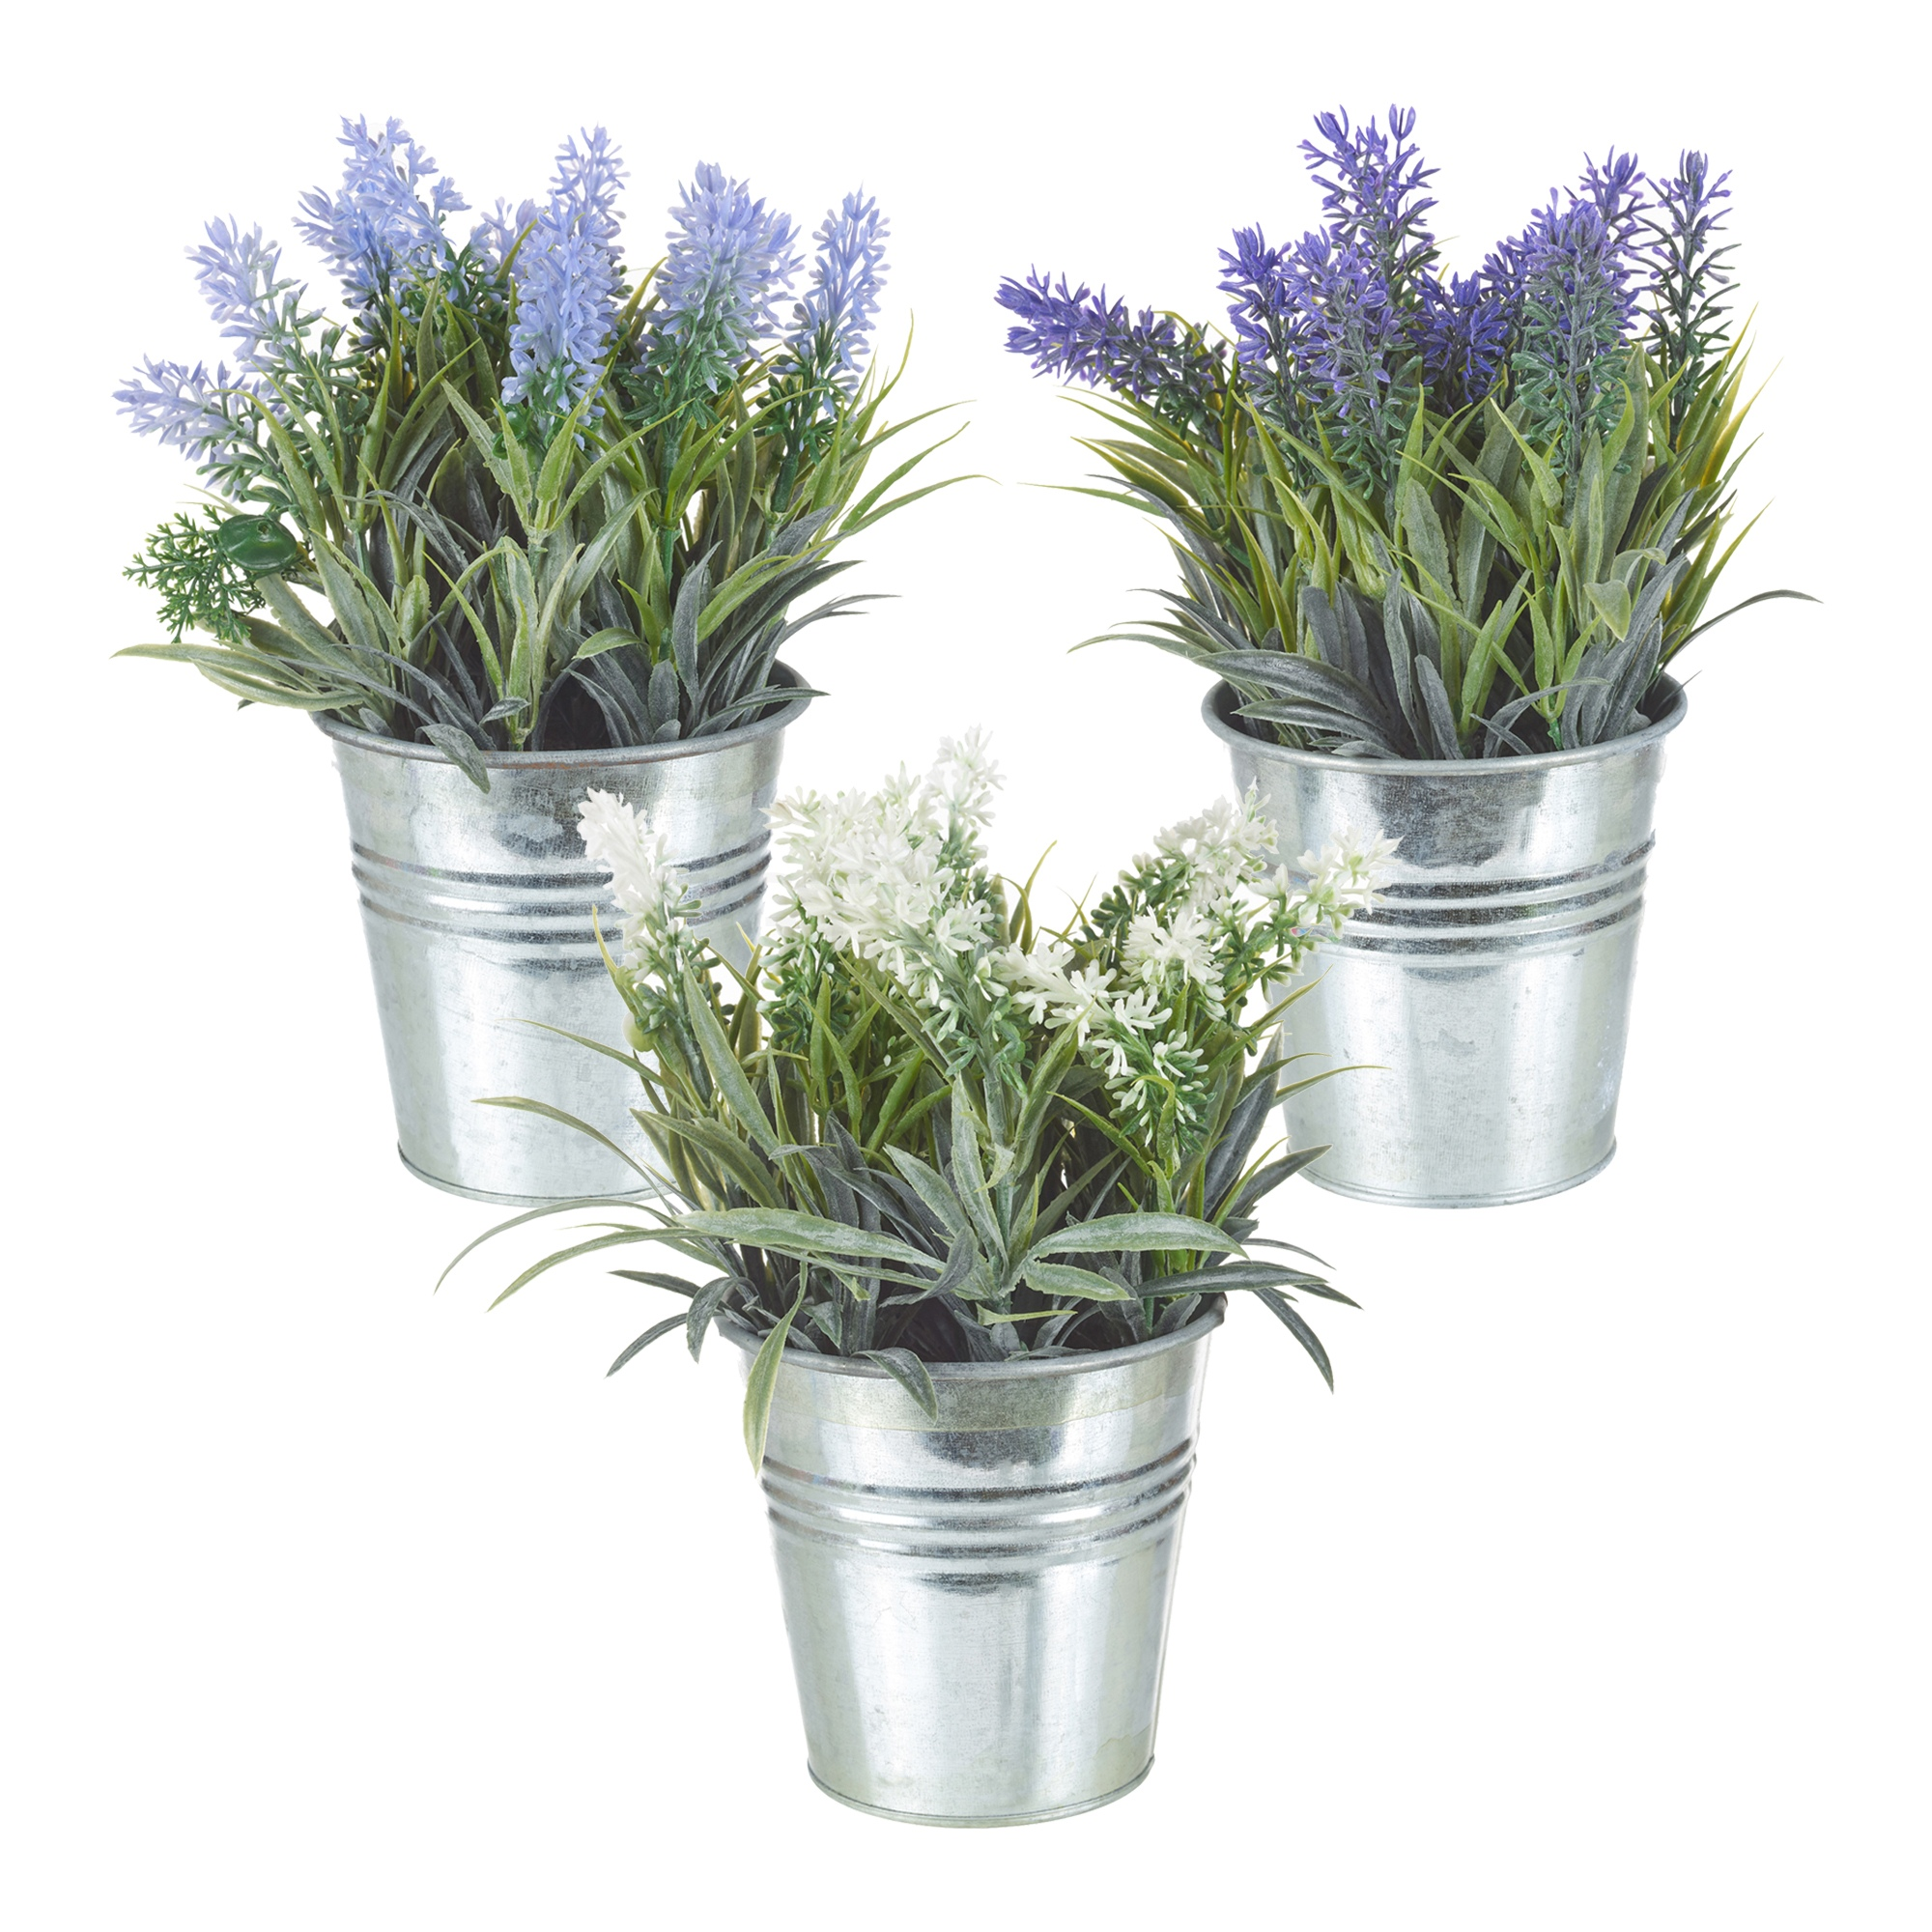 artificial-lavender-tree-387971- Natural Houseplant Containers on sunflower container, spring container, fern container, compost container, wreath container,